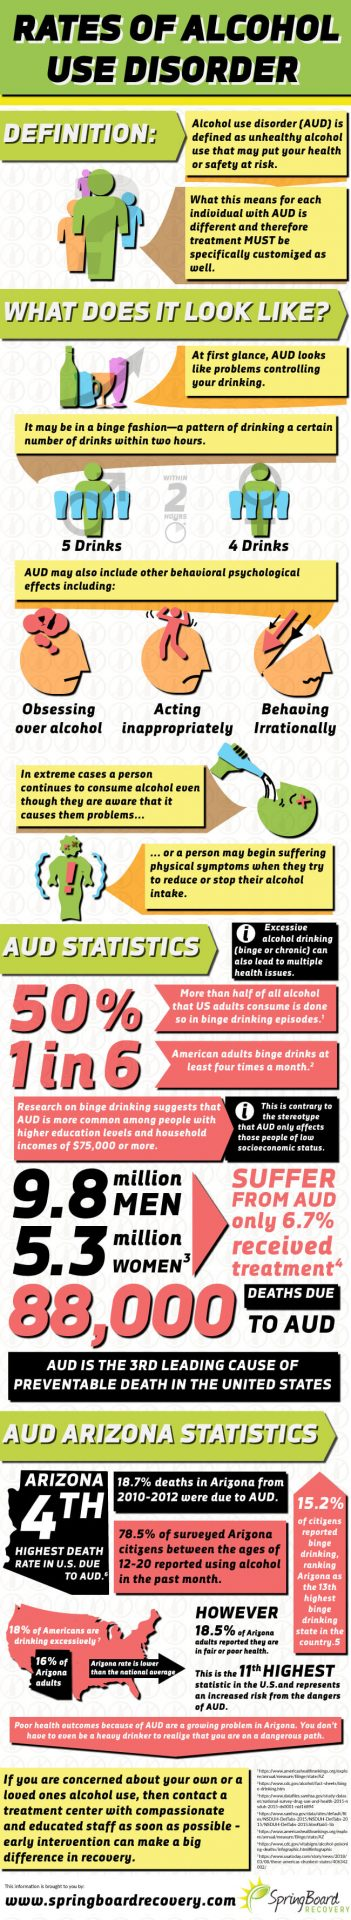 Rates of Alcohol Use Disorder in Arizona as Discussed by Alcohol Rehab in Scottsdale AZ